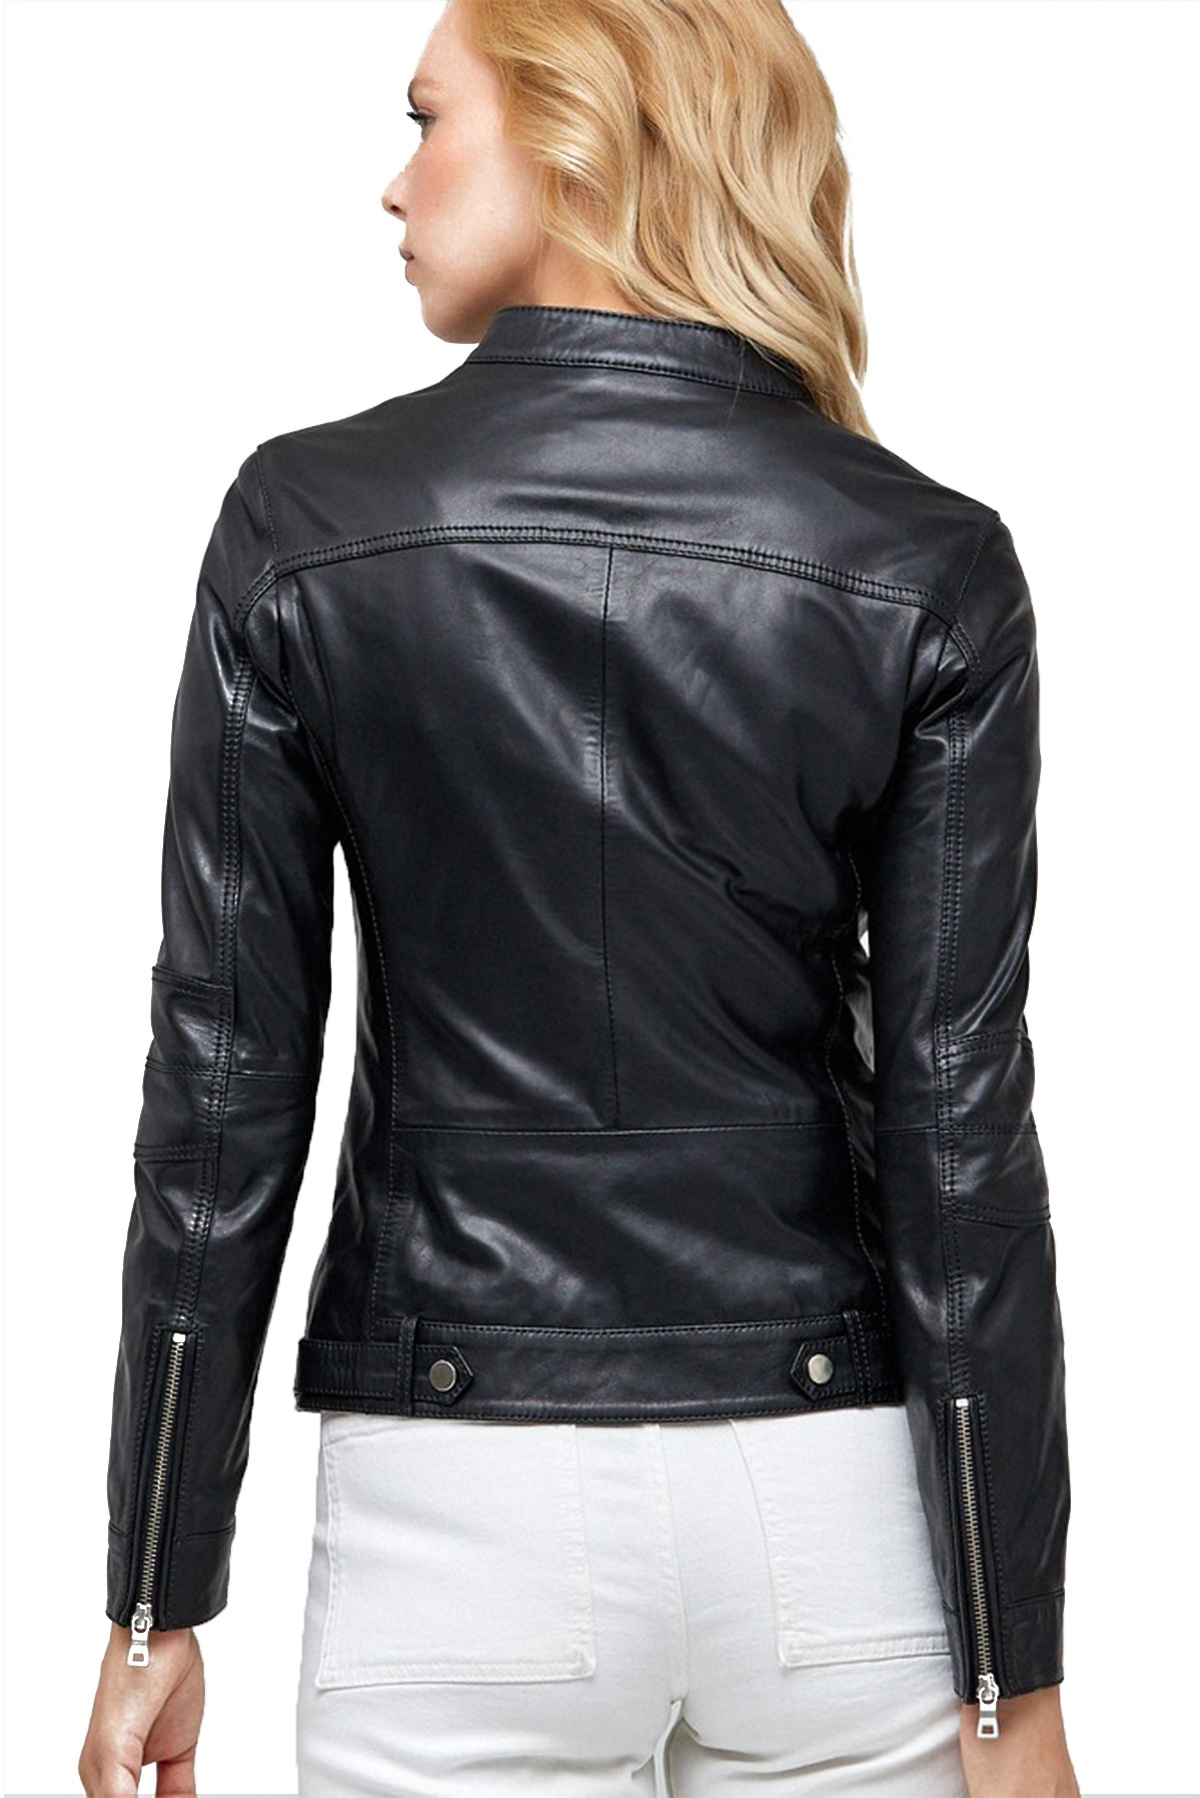 leather coat stores in chicago